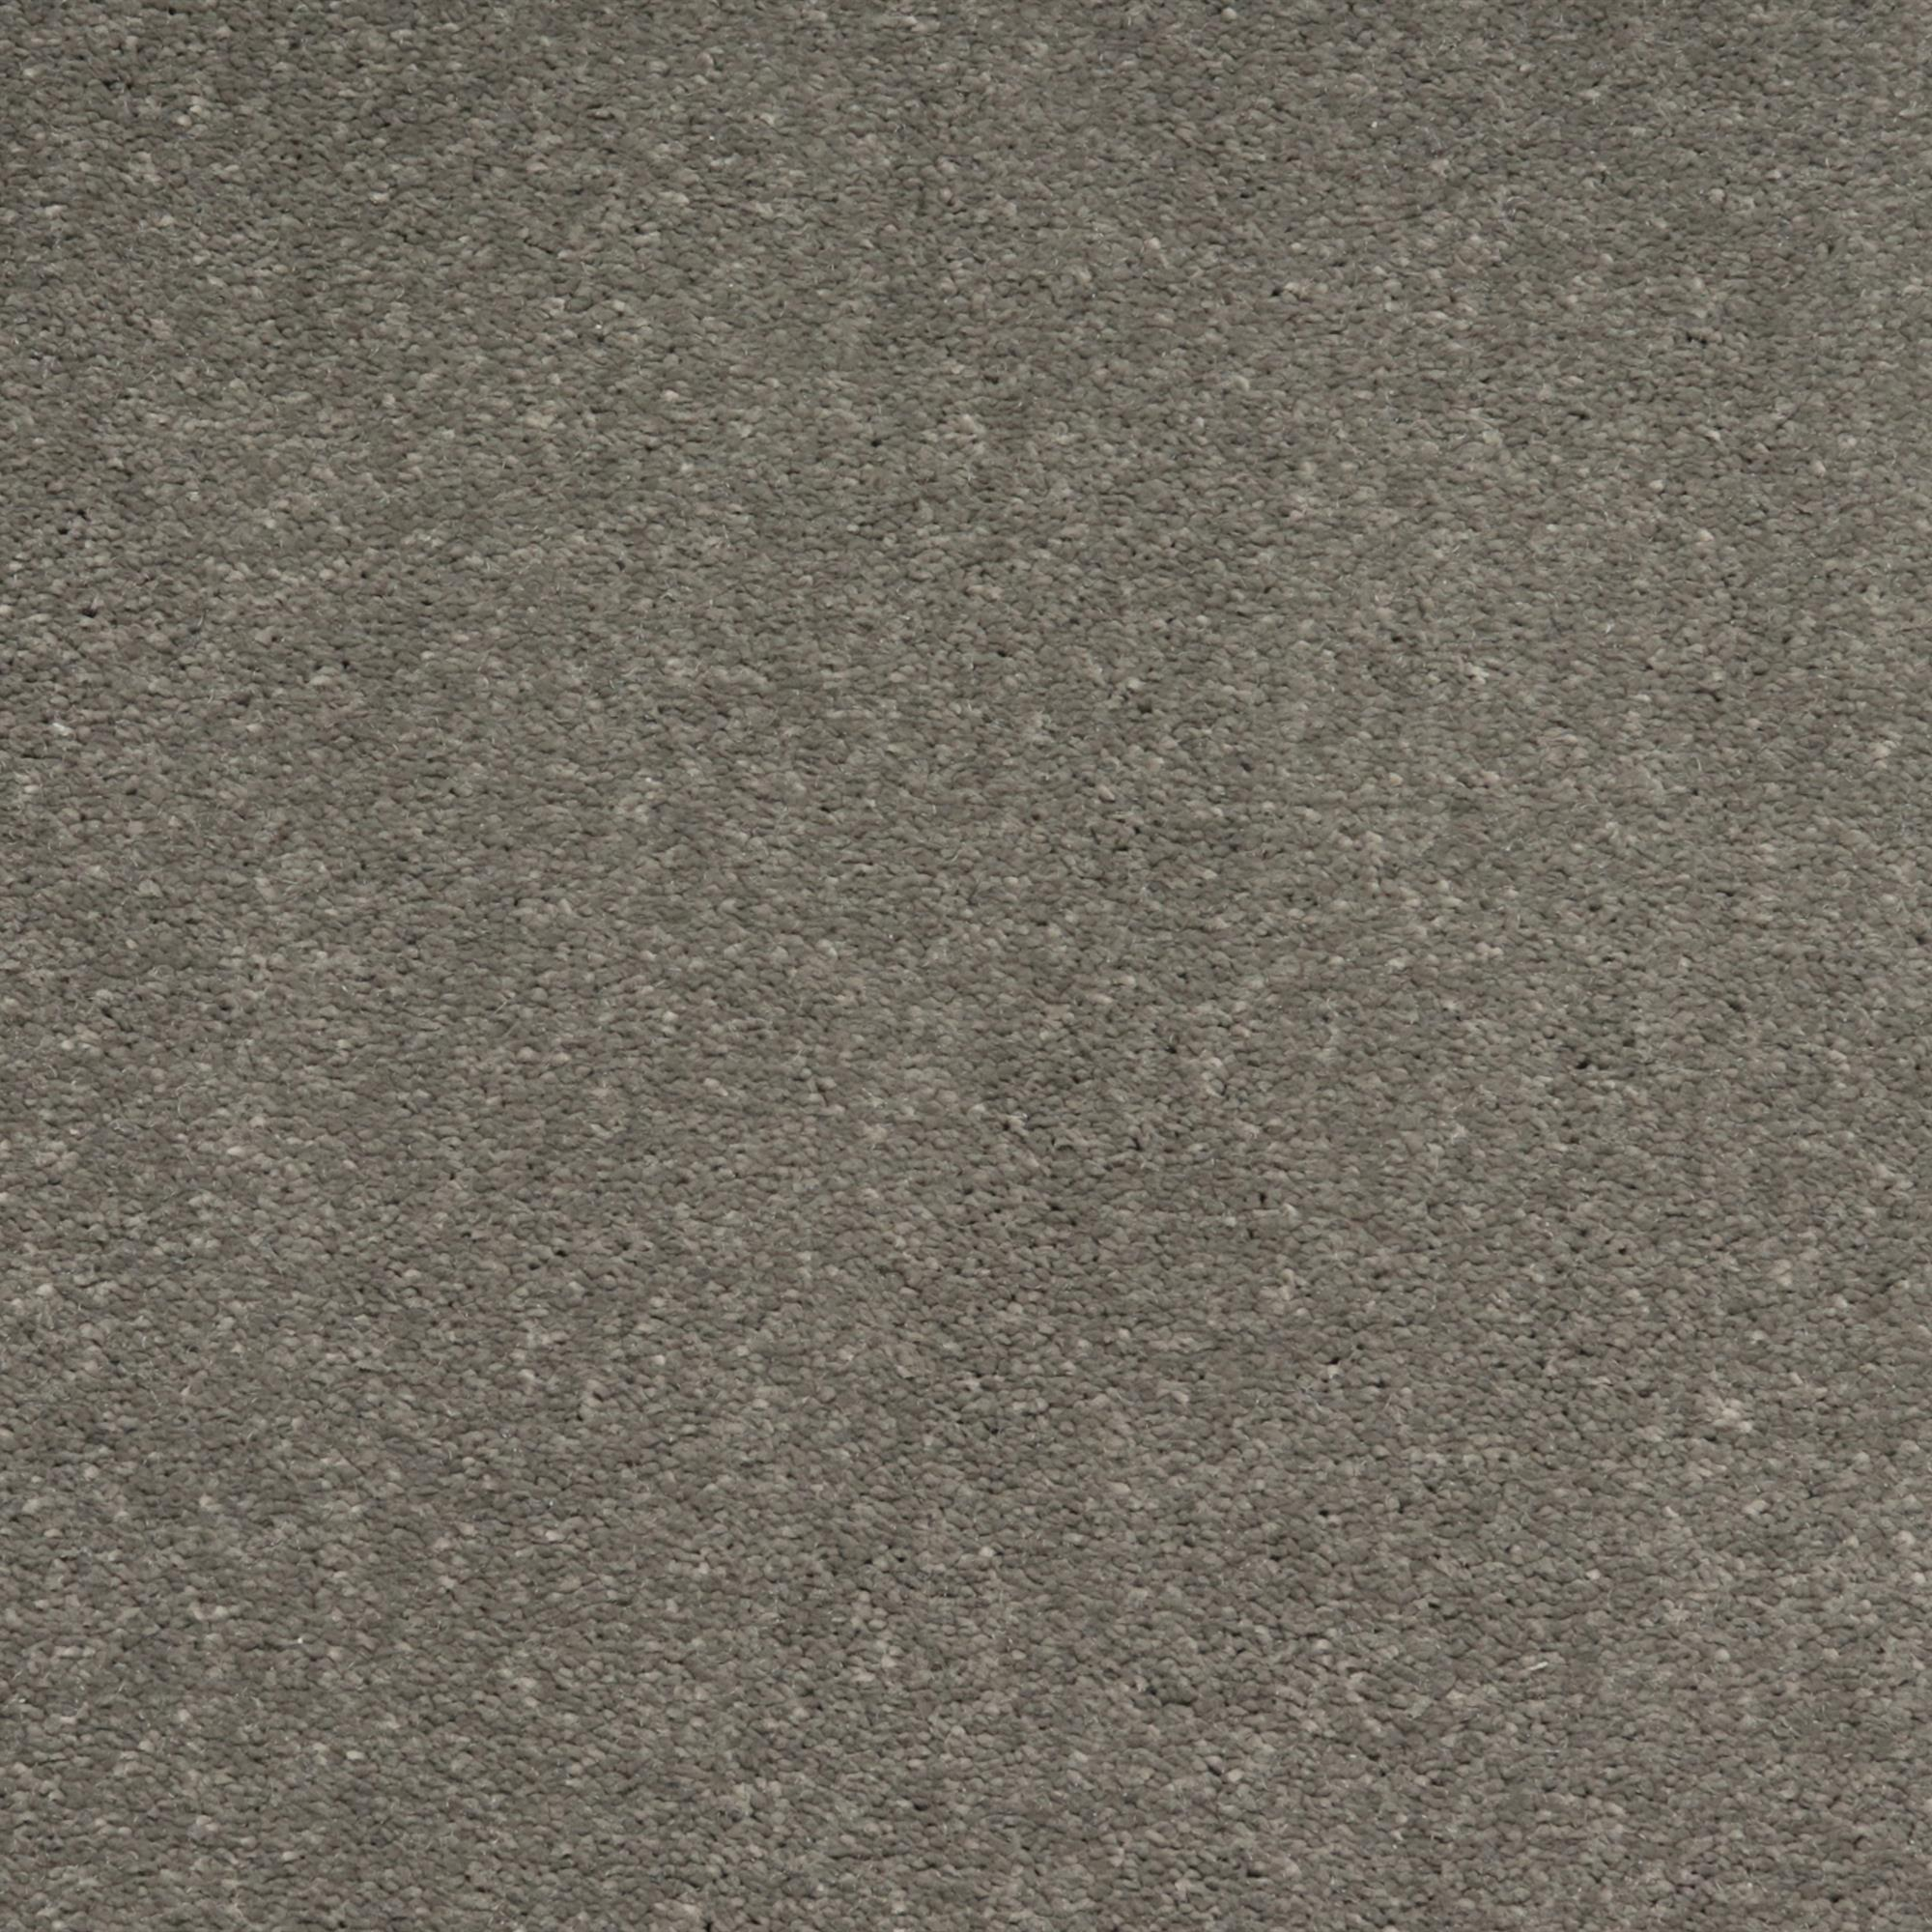 Signature Notting Hill Carpet, Notting Hill Lu819 Classy, swatch